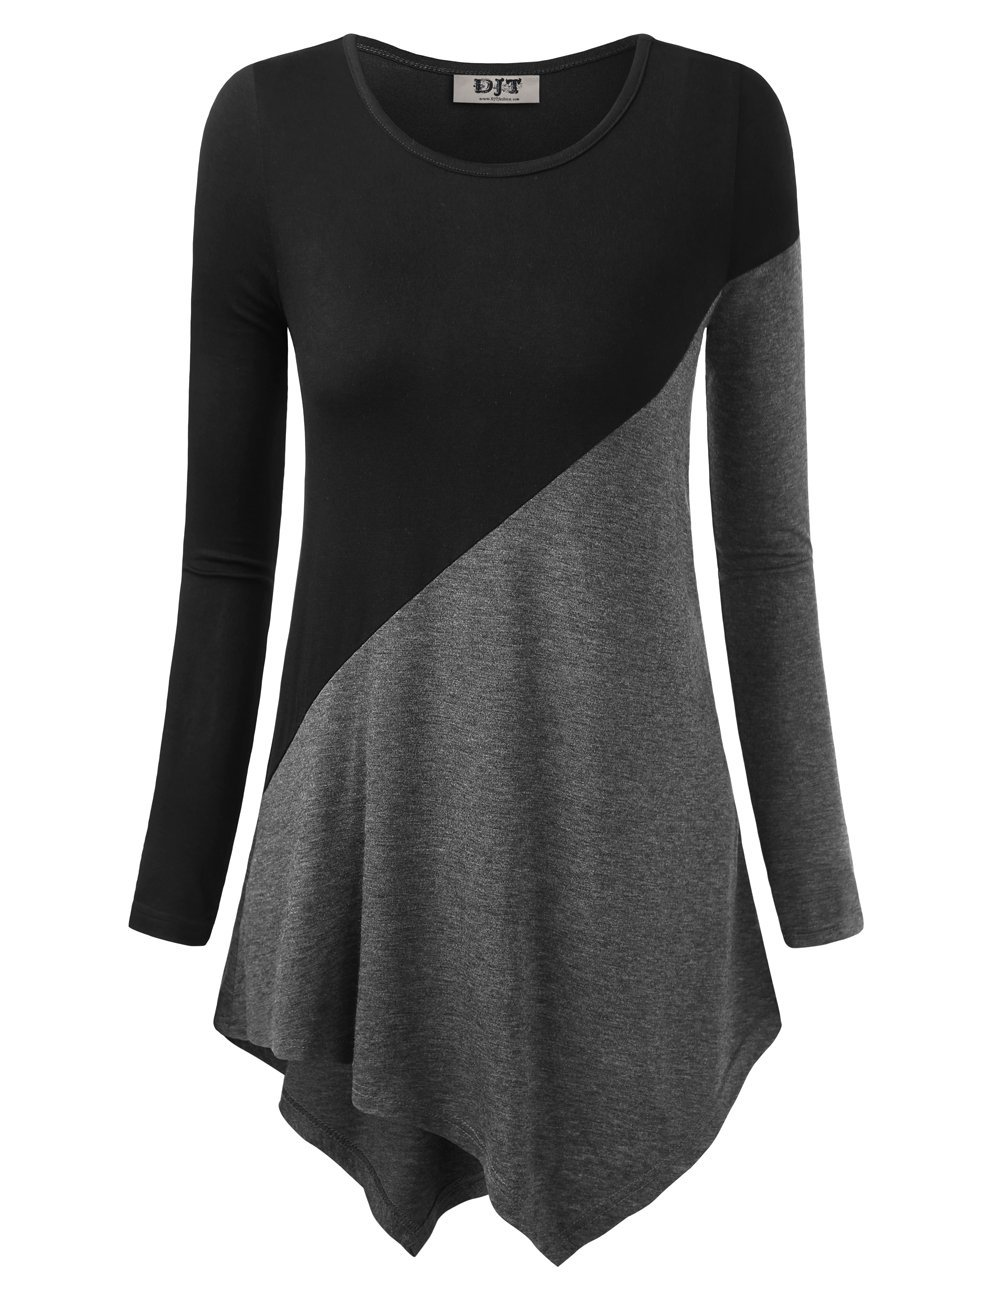 DJT Women's Color Block Long Sleeve T Shirts Tunic Tops L Black+Dary Grey by DJT